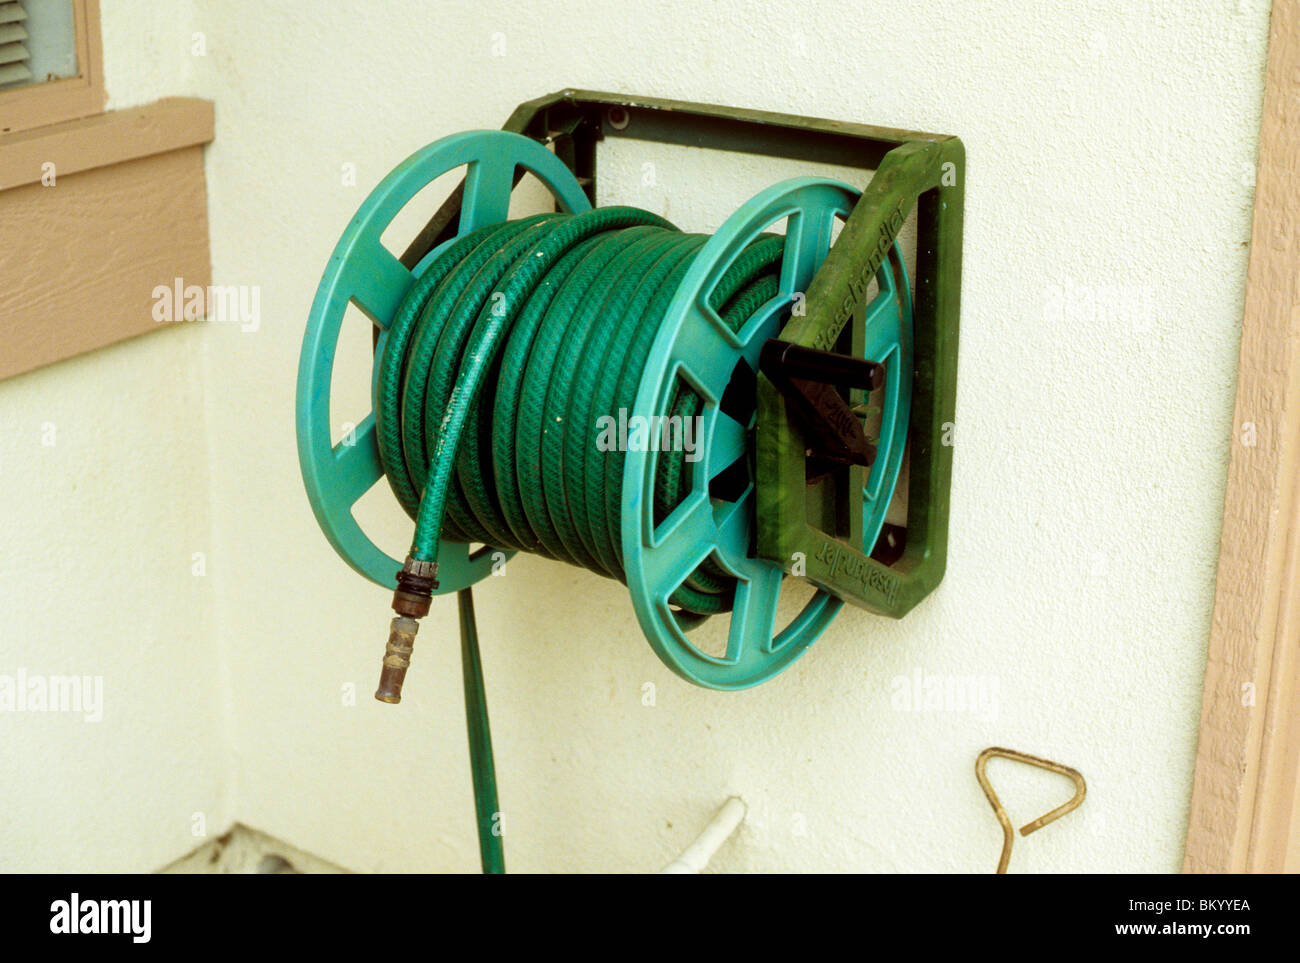 Hose Reel Wall Of House Home Tool Control Neat Organize Store Storage  Plastic Yard Garden Lawn Grass Pool